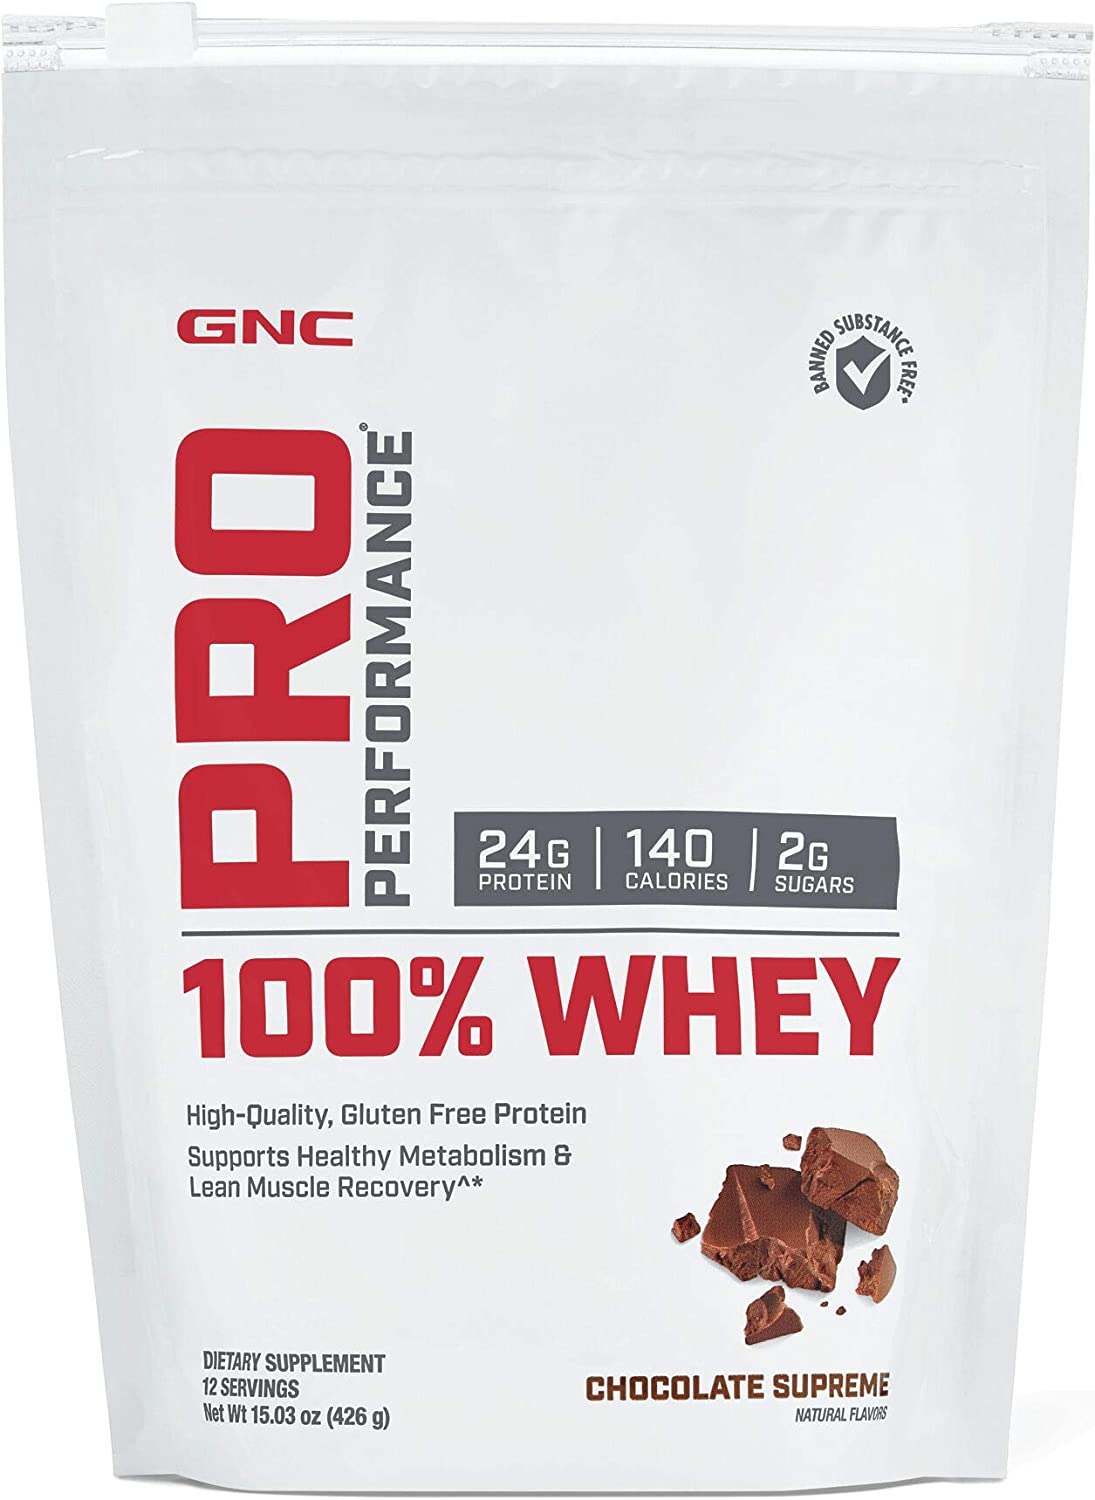 Max 70% OFF GNC Pro Performance 100% Whey online shopping - Chocolate Protein Supreme Powder